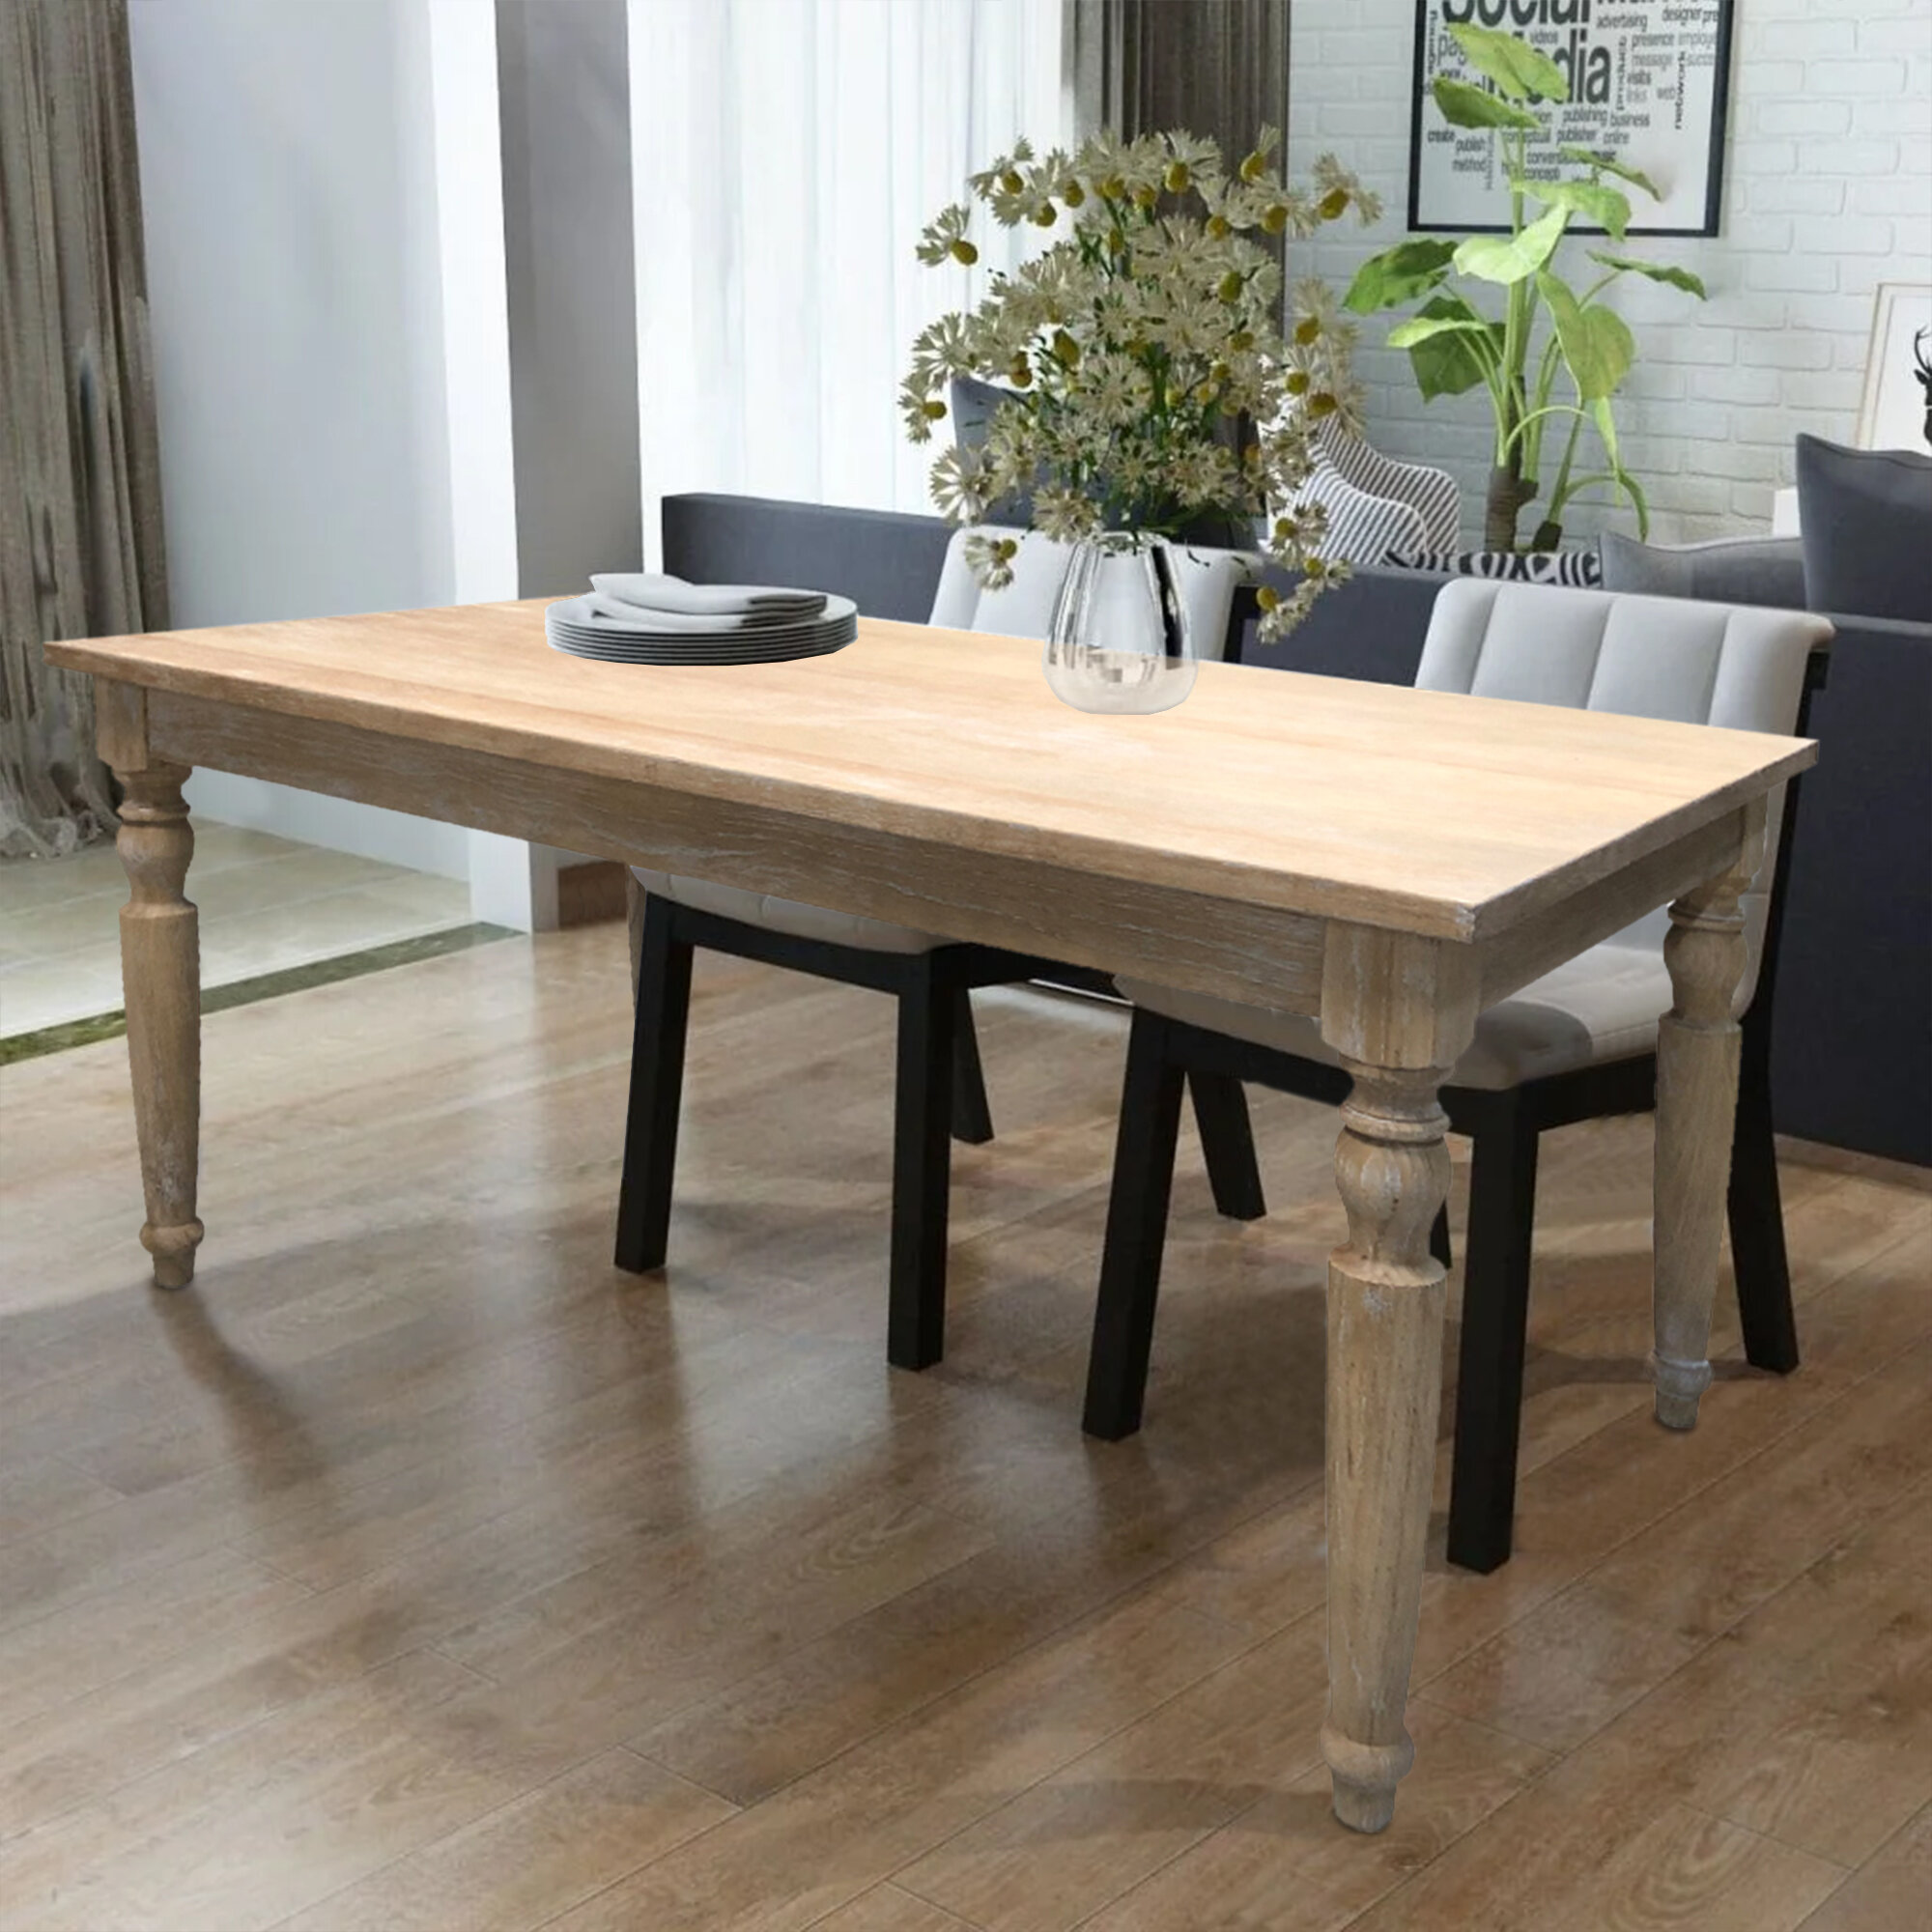 Wayfair Reclaimed Kitchen Dining Tables You Ll Love In 2021